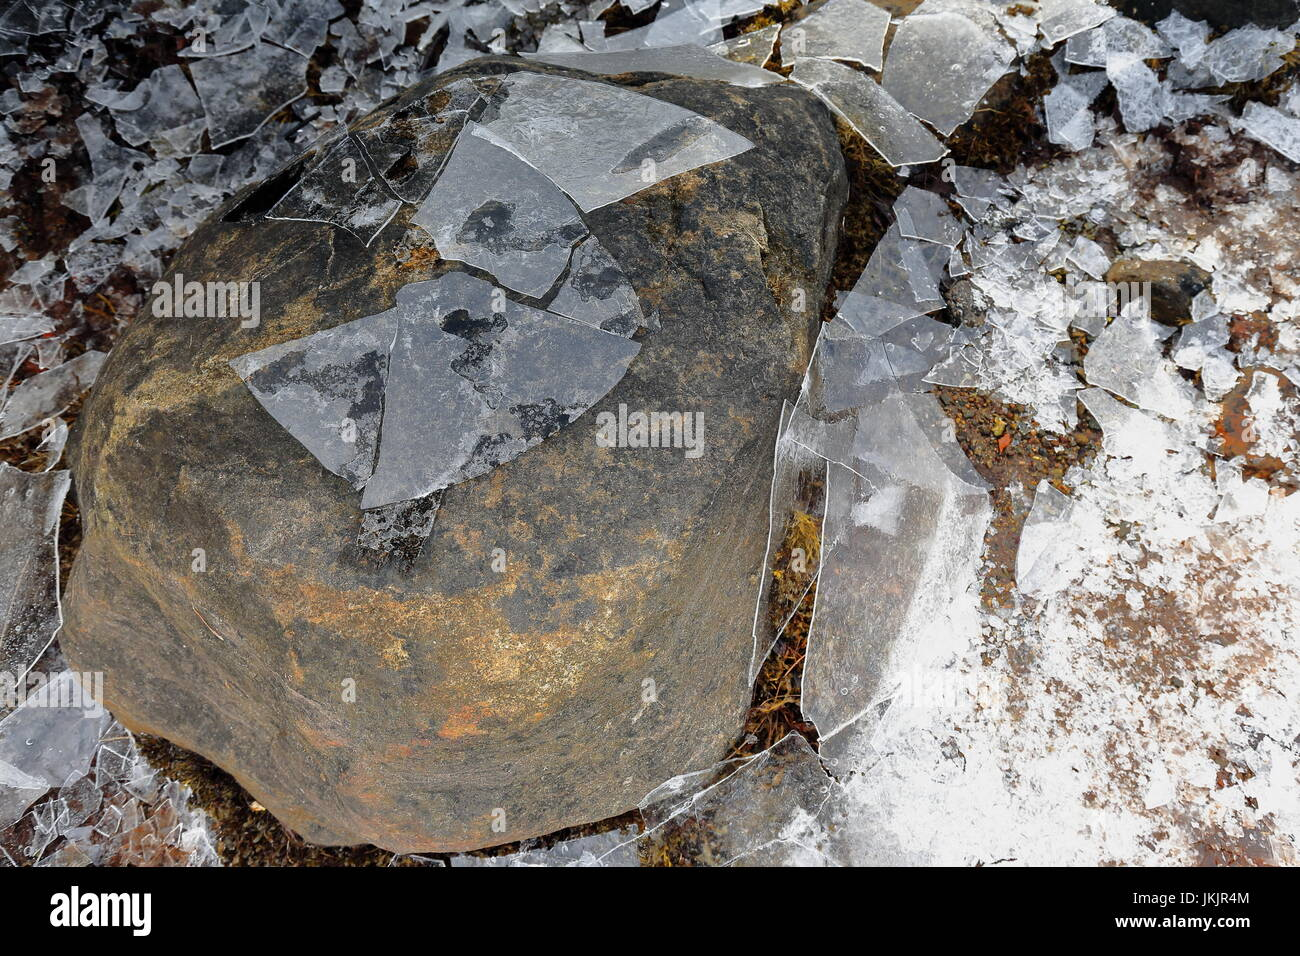 Detail of brittle ice smashed on the floor-stone at the bottom of small cove in Sildpolltjonna bay-S.shore Sildpollnes - Stock Image